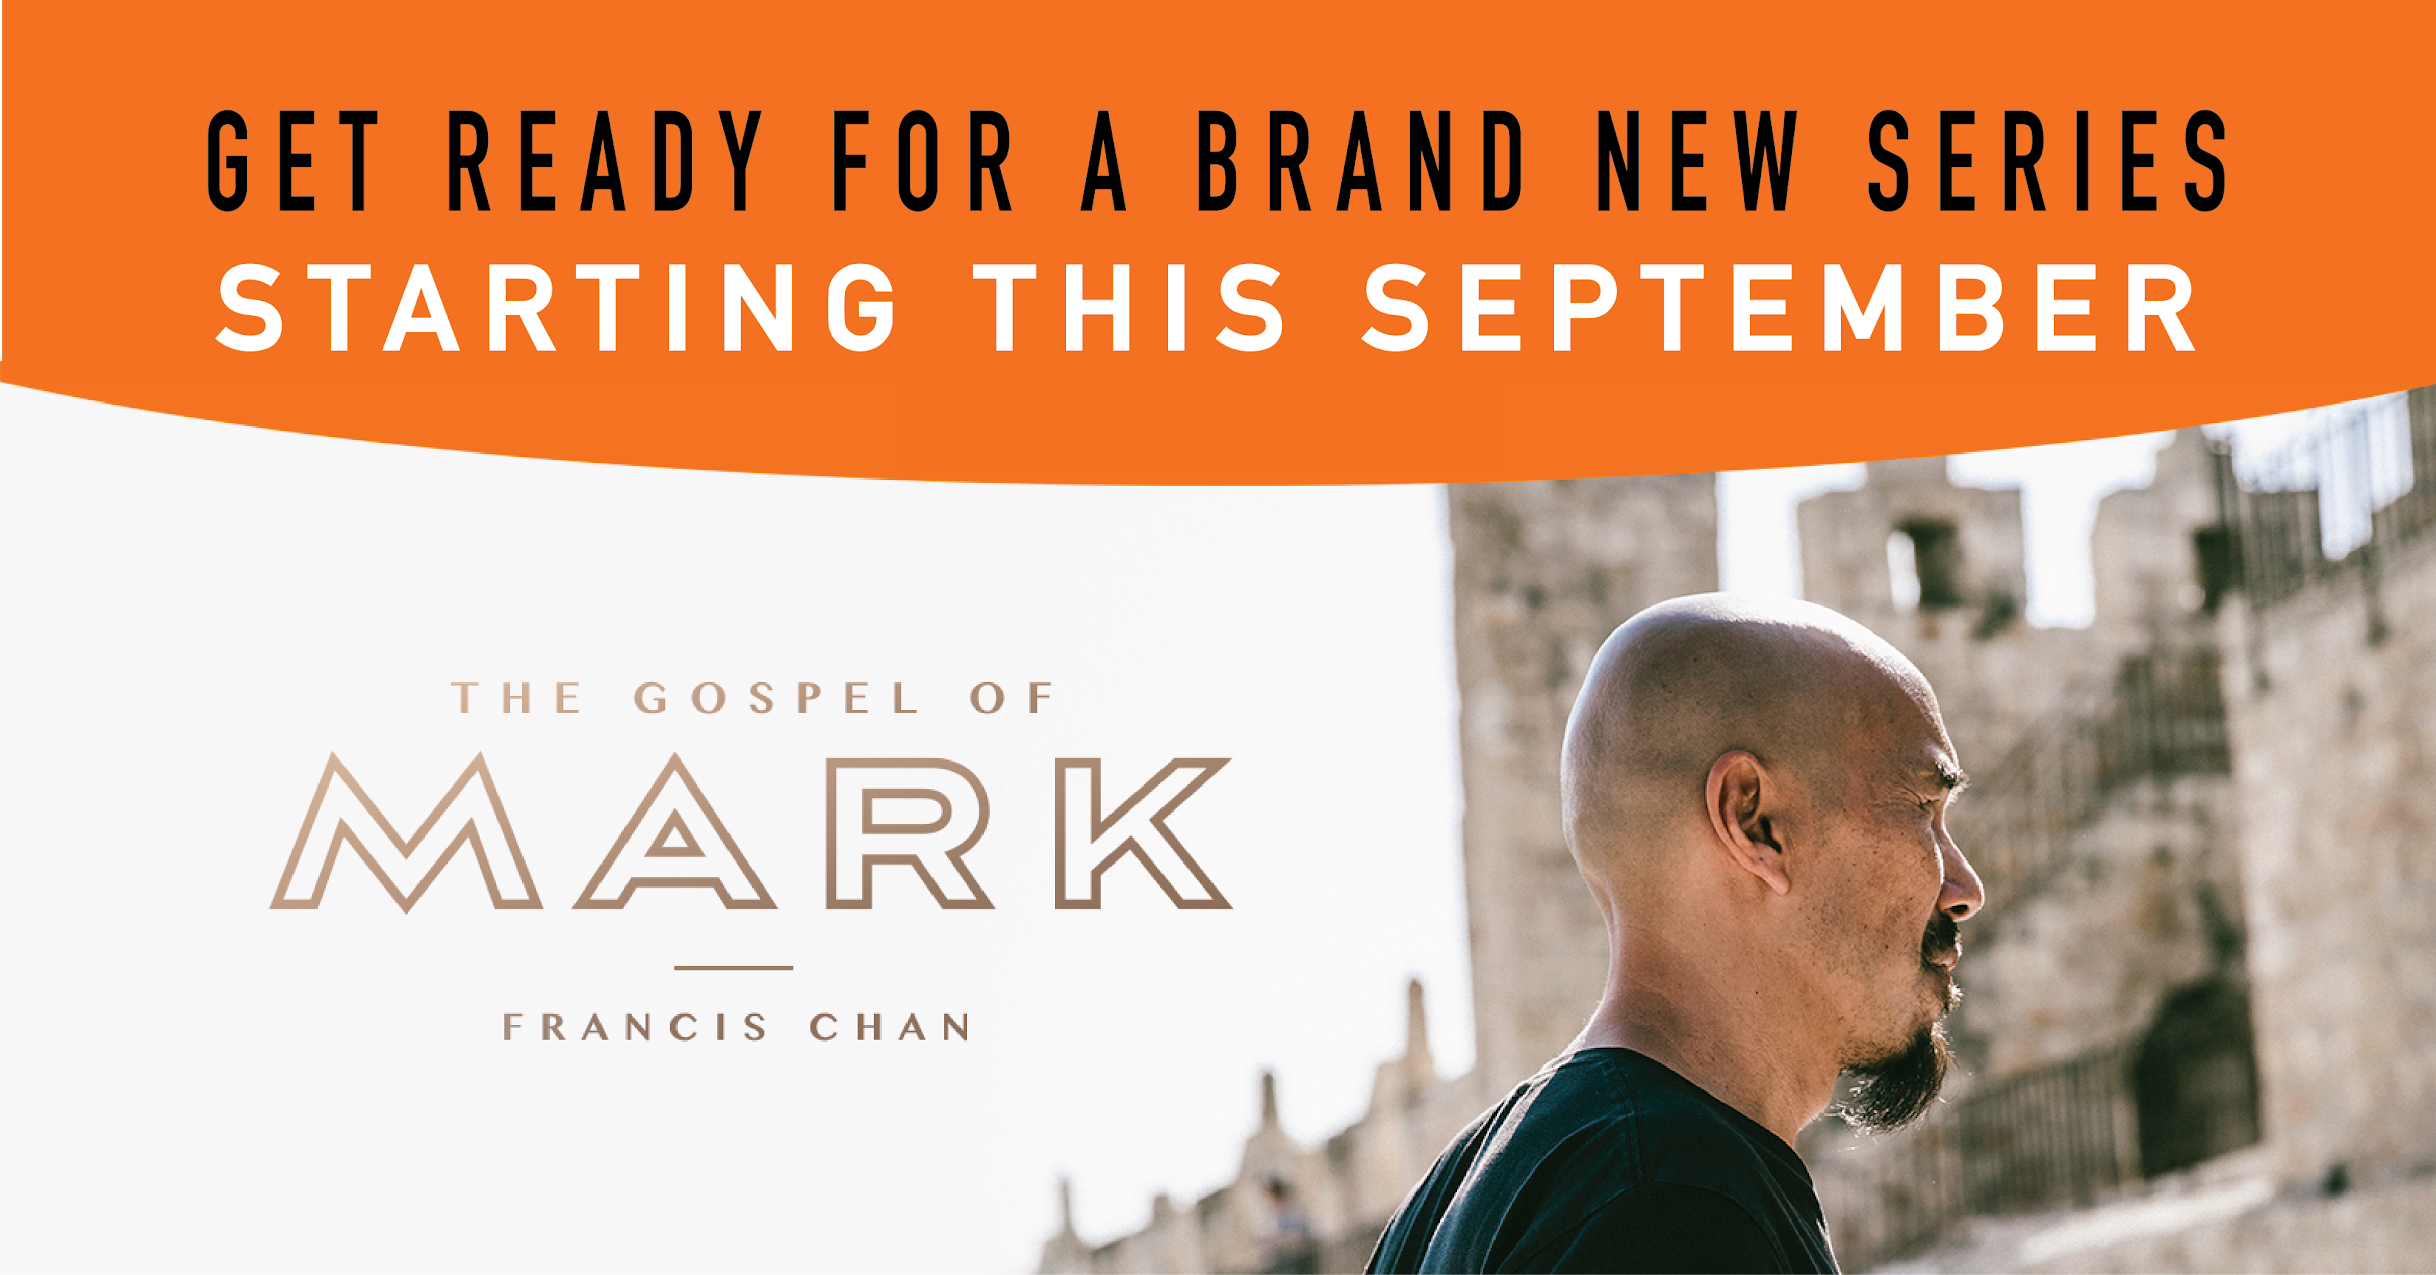 Newest Seriers - Get ready for the month of September, as we dive right into The Gospel of Mark. Be sure to get connected in a Small Group for more details!